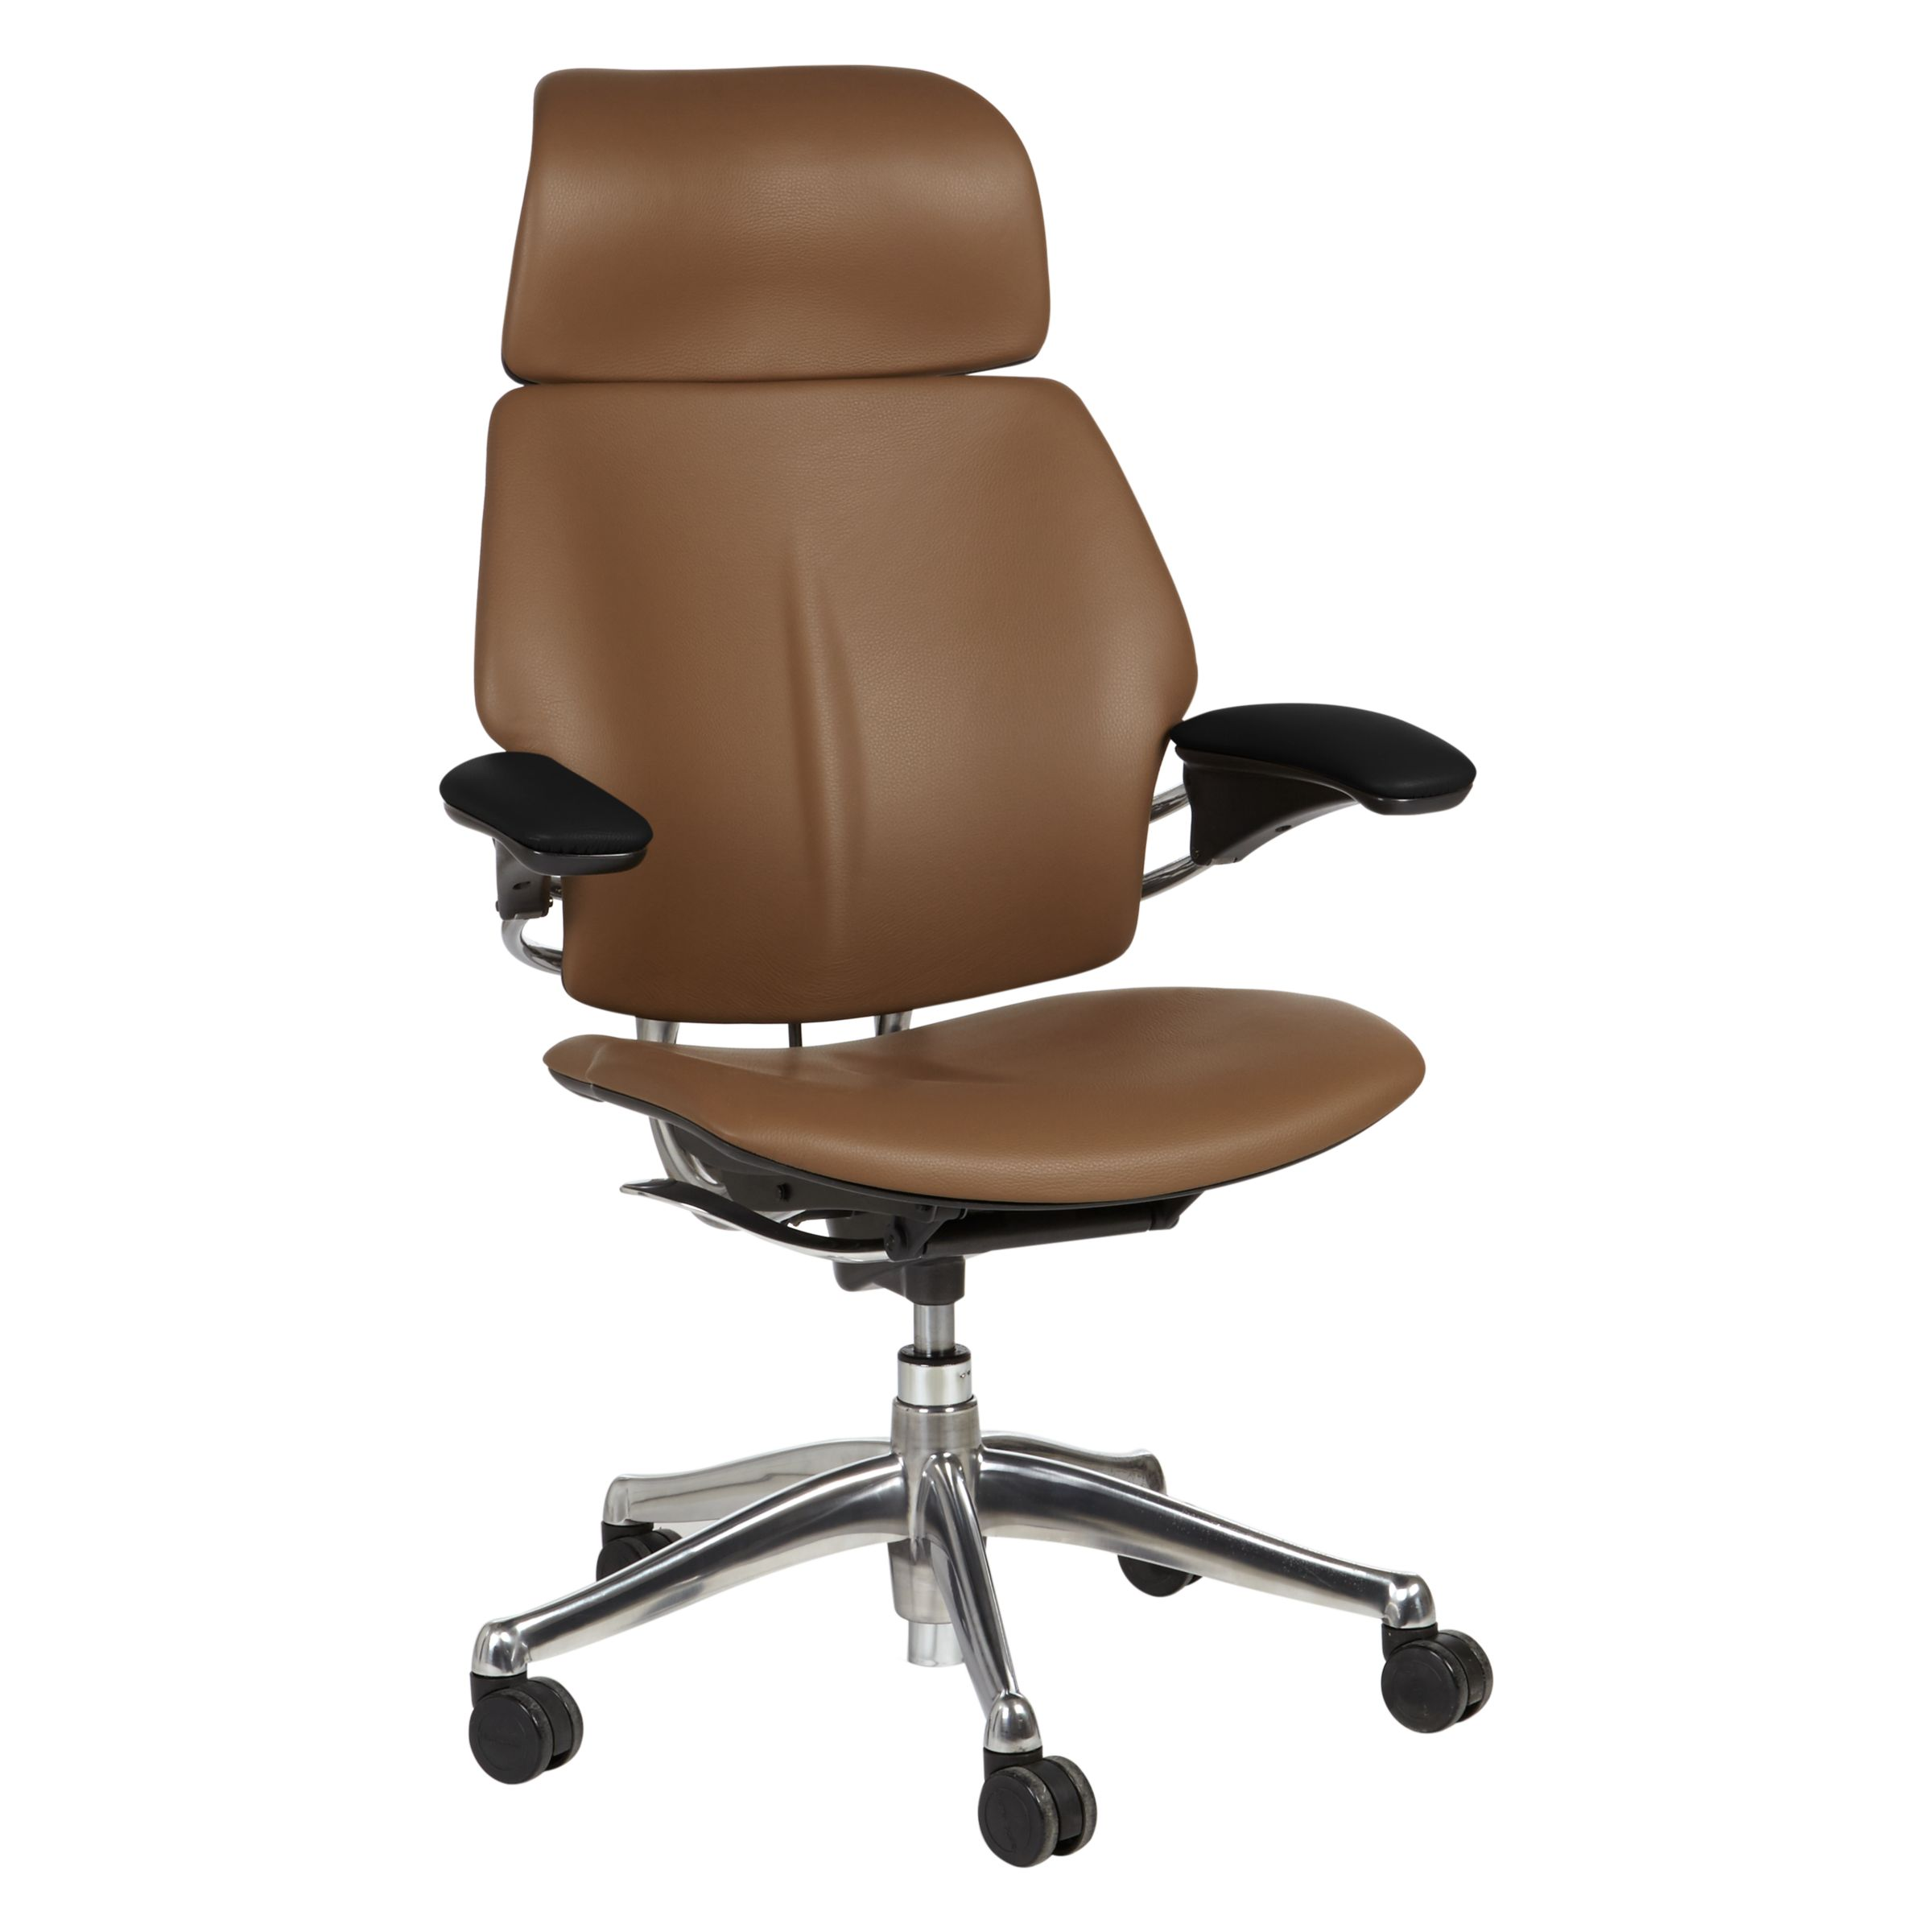 Humanscale Humanscale Freedom Office Chair with Headrest